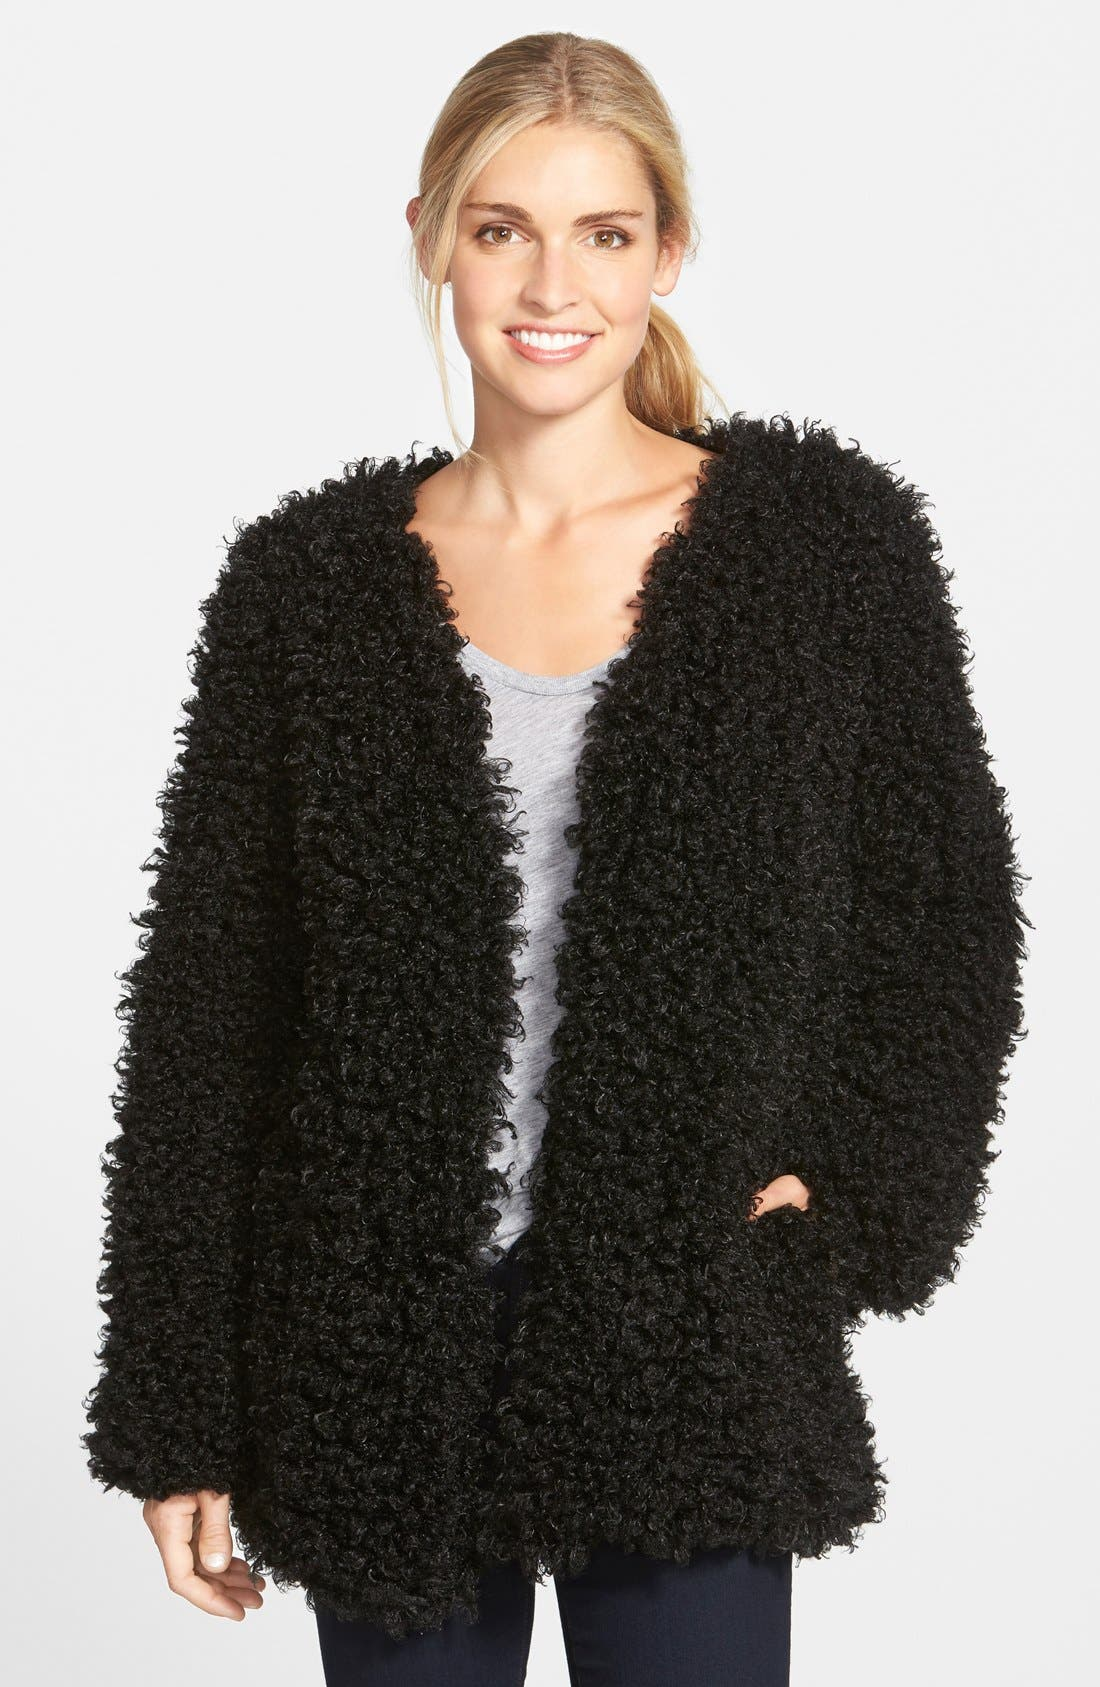 Main Image - Vince Camuto Curly Faux Fur Jacket